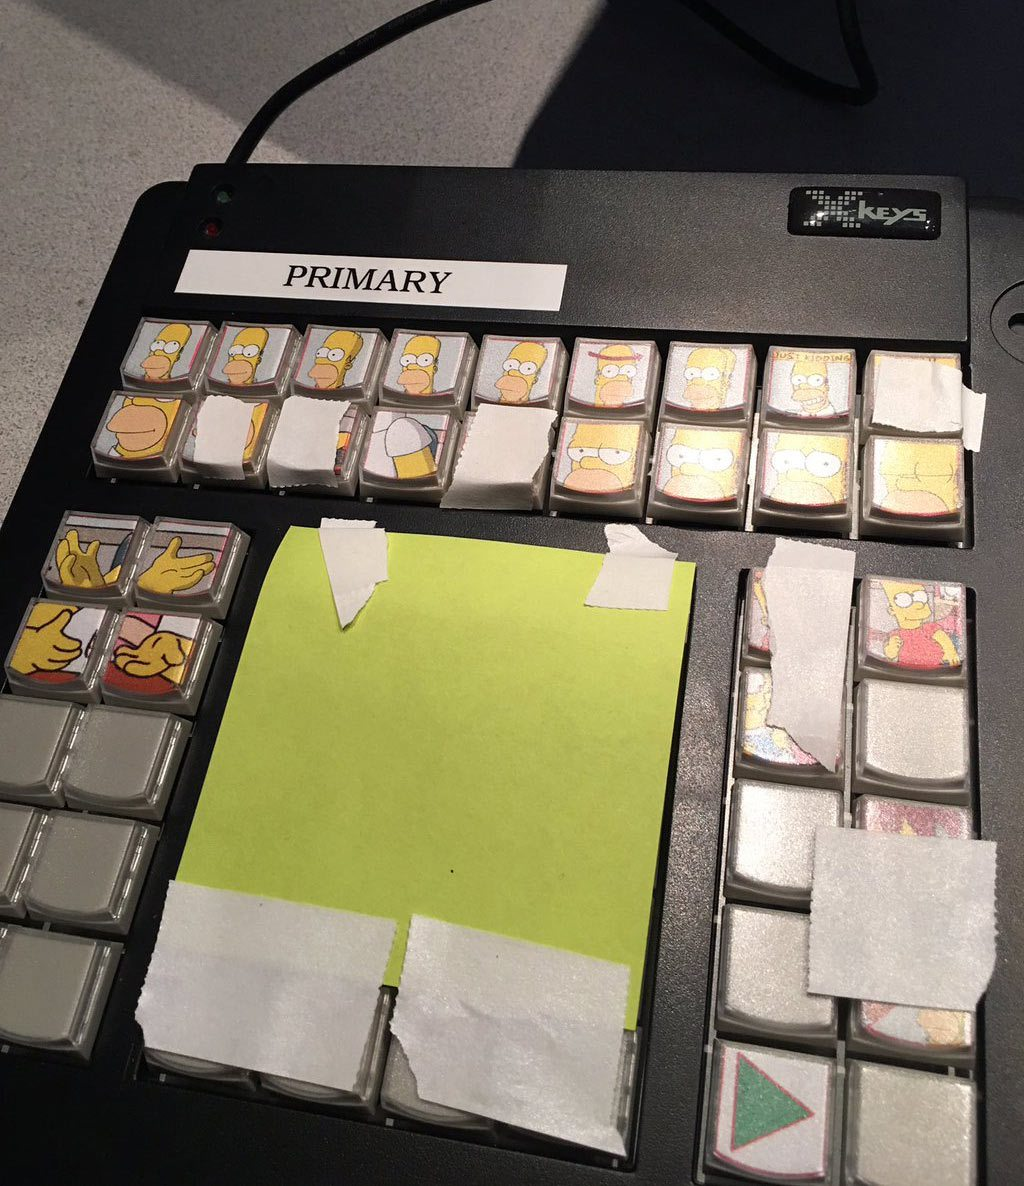 David Silverman posted this image of the keypad he used to control pre-animated elements for The Simpsons live segment.